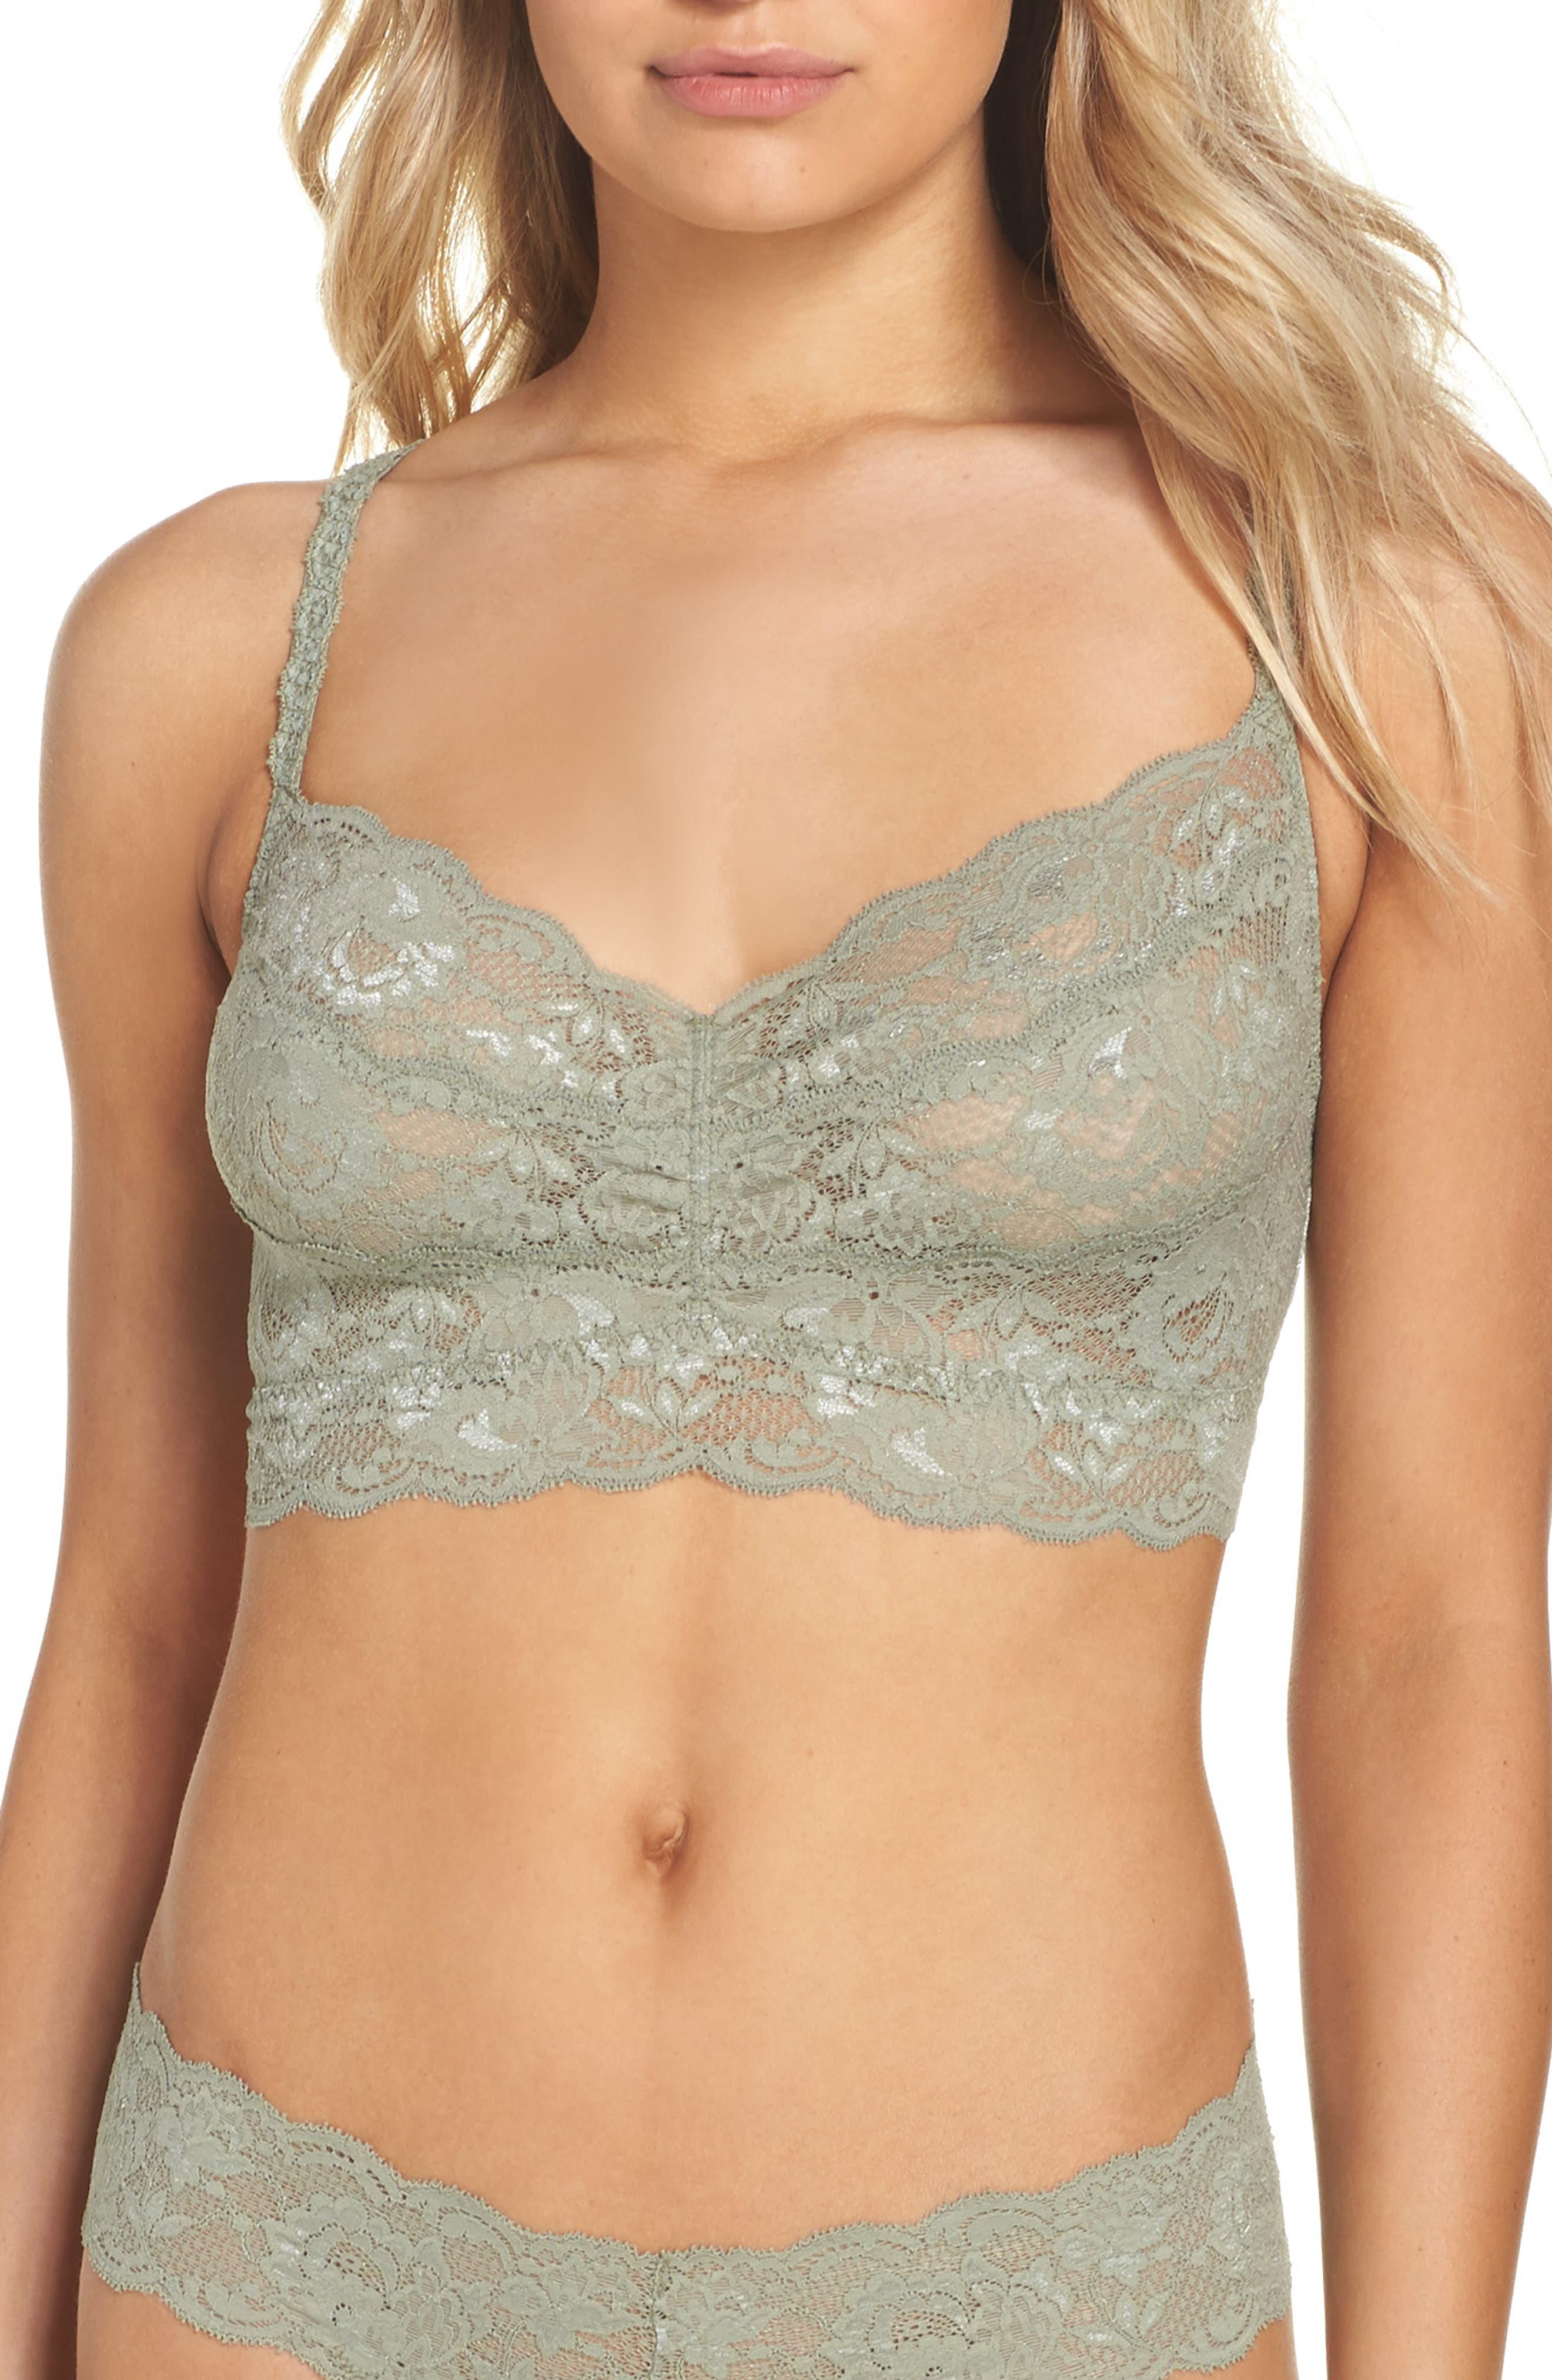 Cosabella 'Never Say Never Sweetie' Bralette